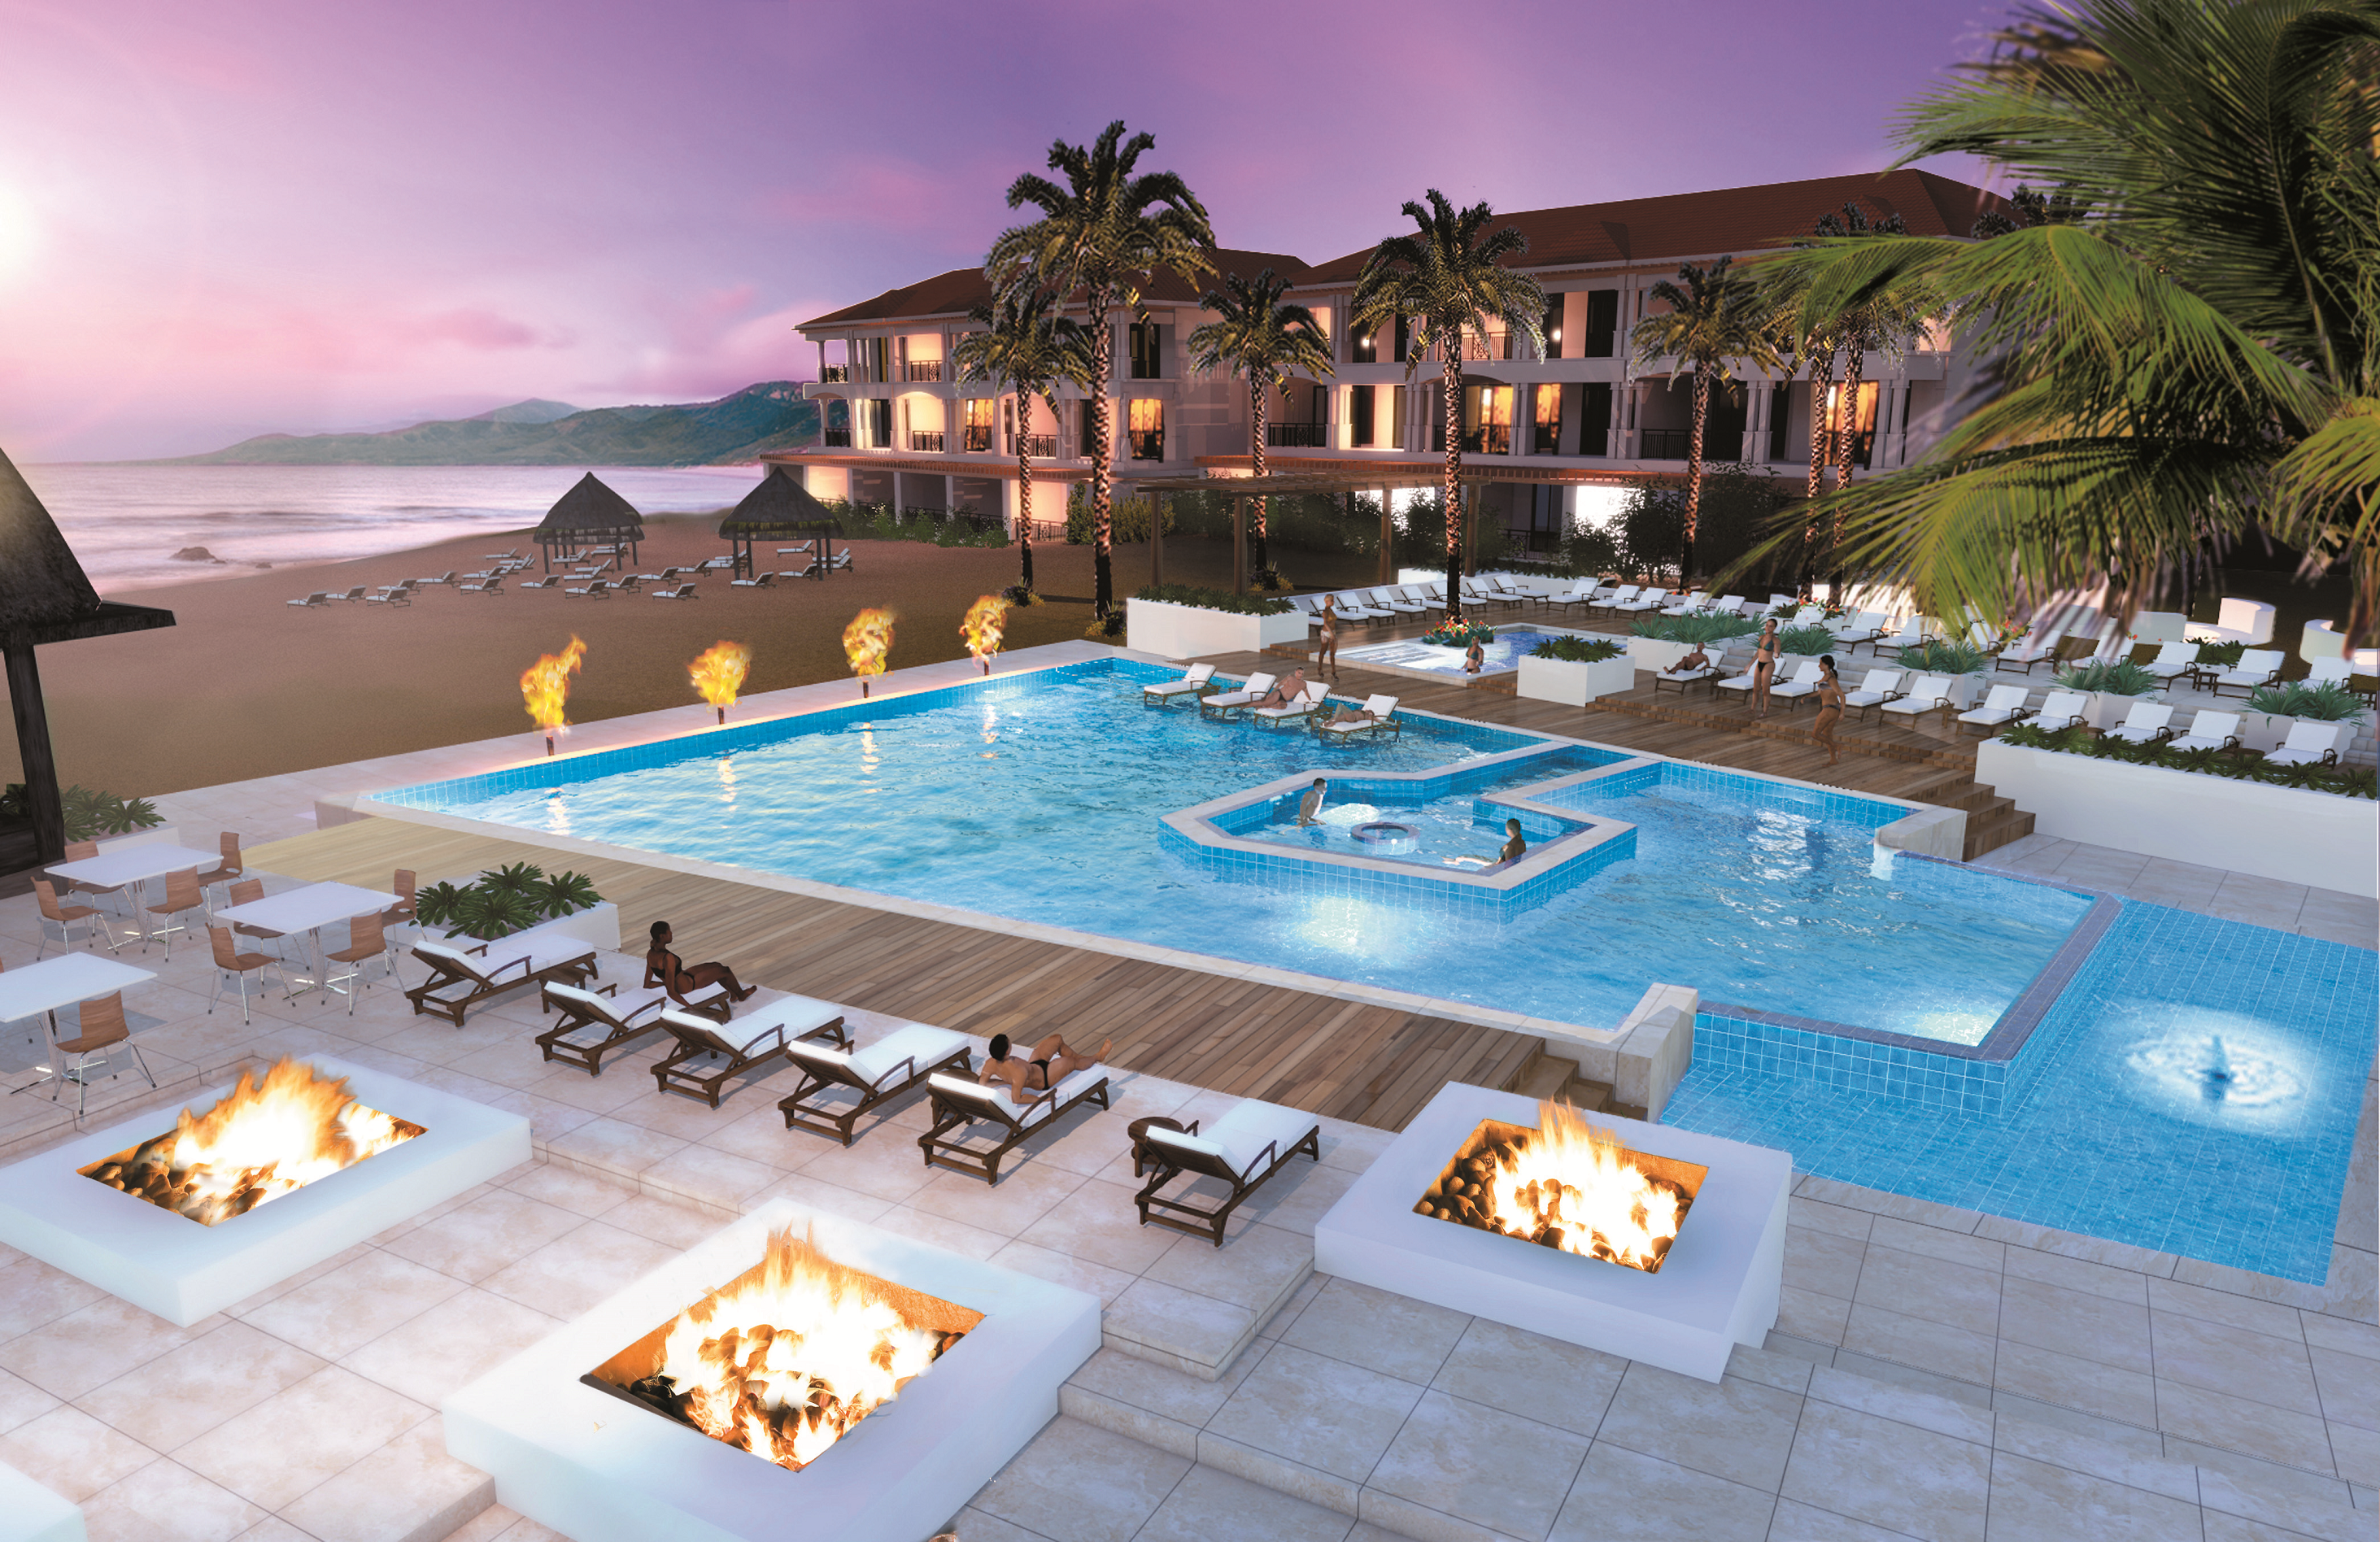 Stewart Clan Proves Sandals Resorts International Is All